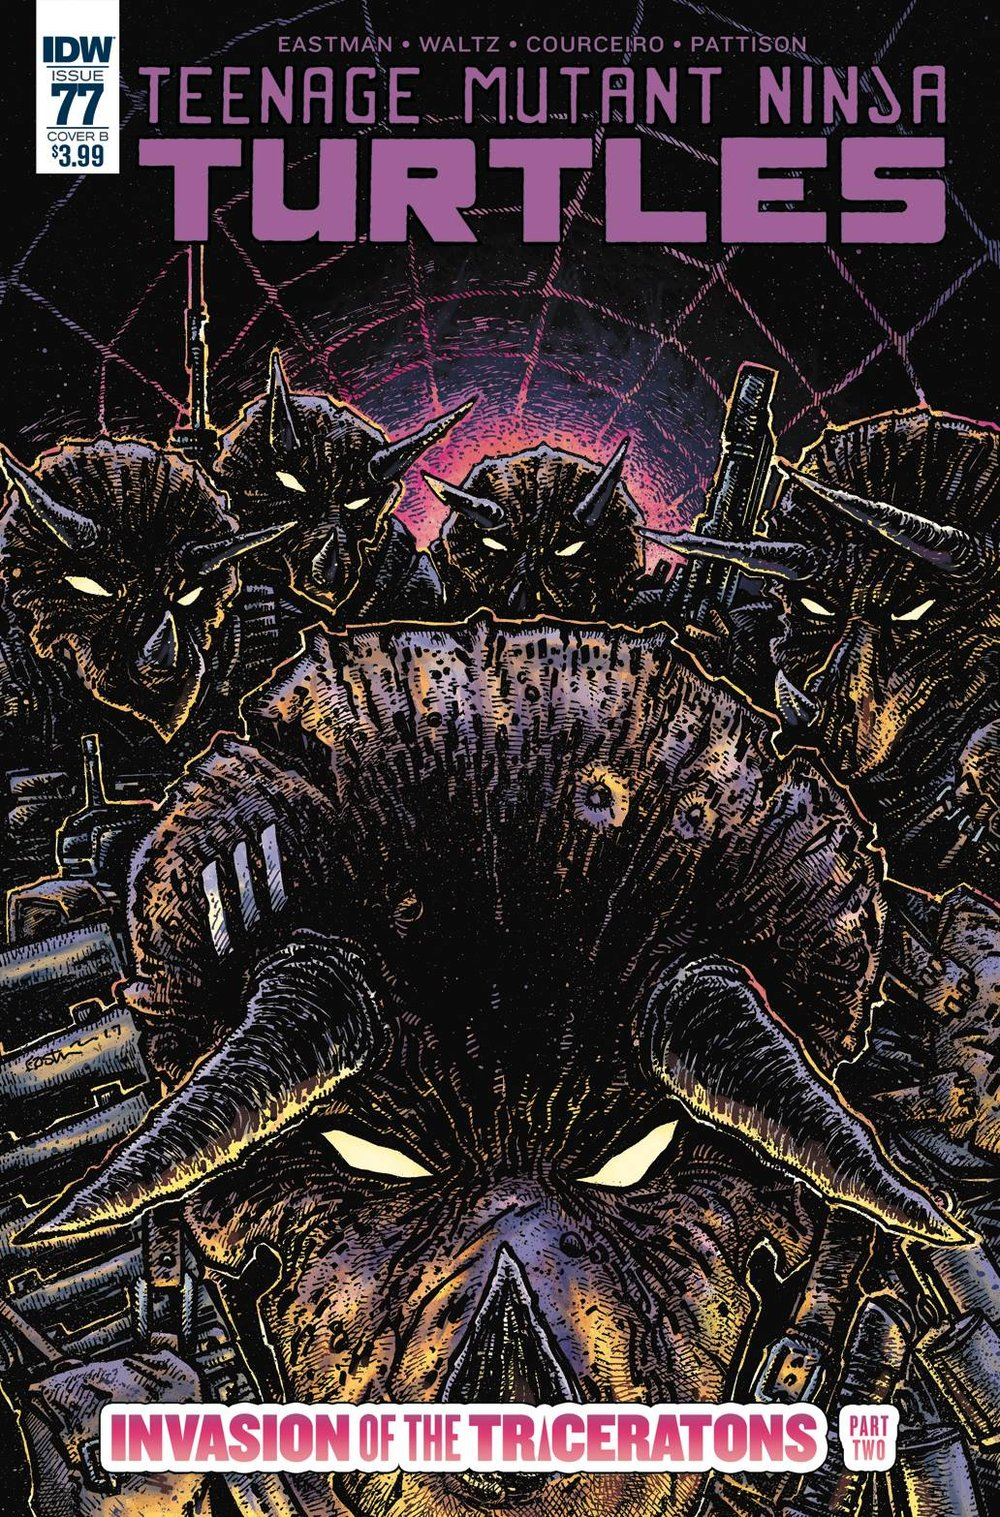 TMNT ONGOING 77 CVR B EASTMAN.jpg